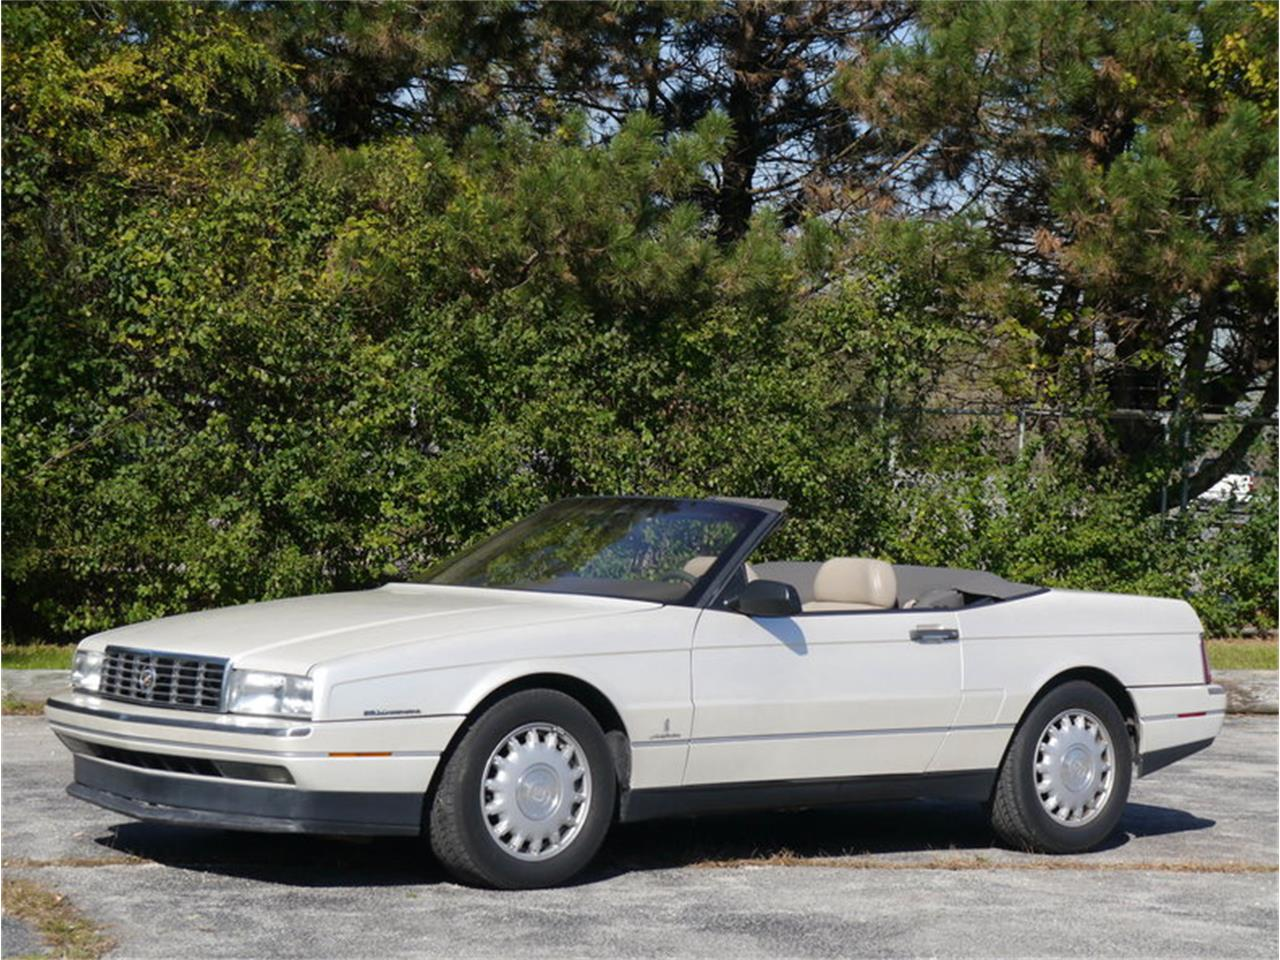 Large Picture of 1993 Cadillac Allante Offered by Midwest Car Exchange - MD78